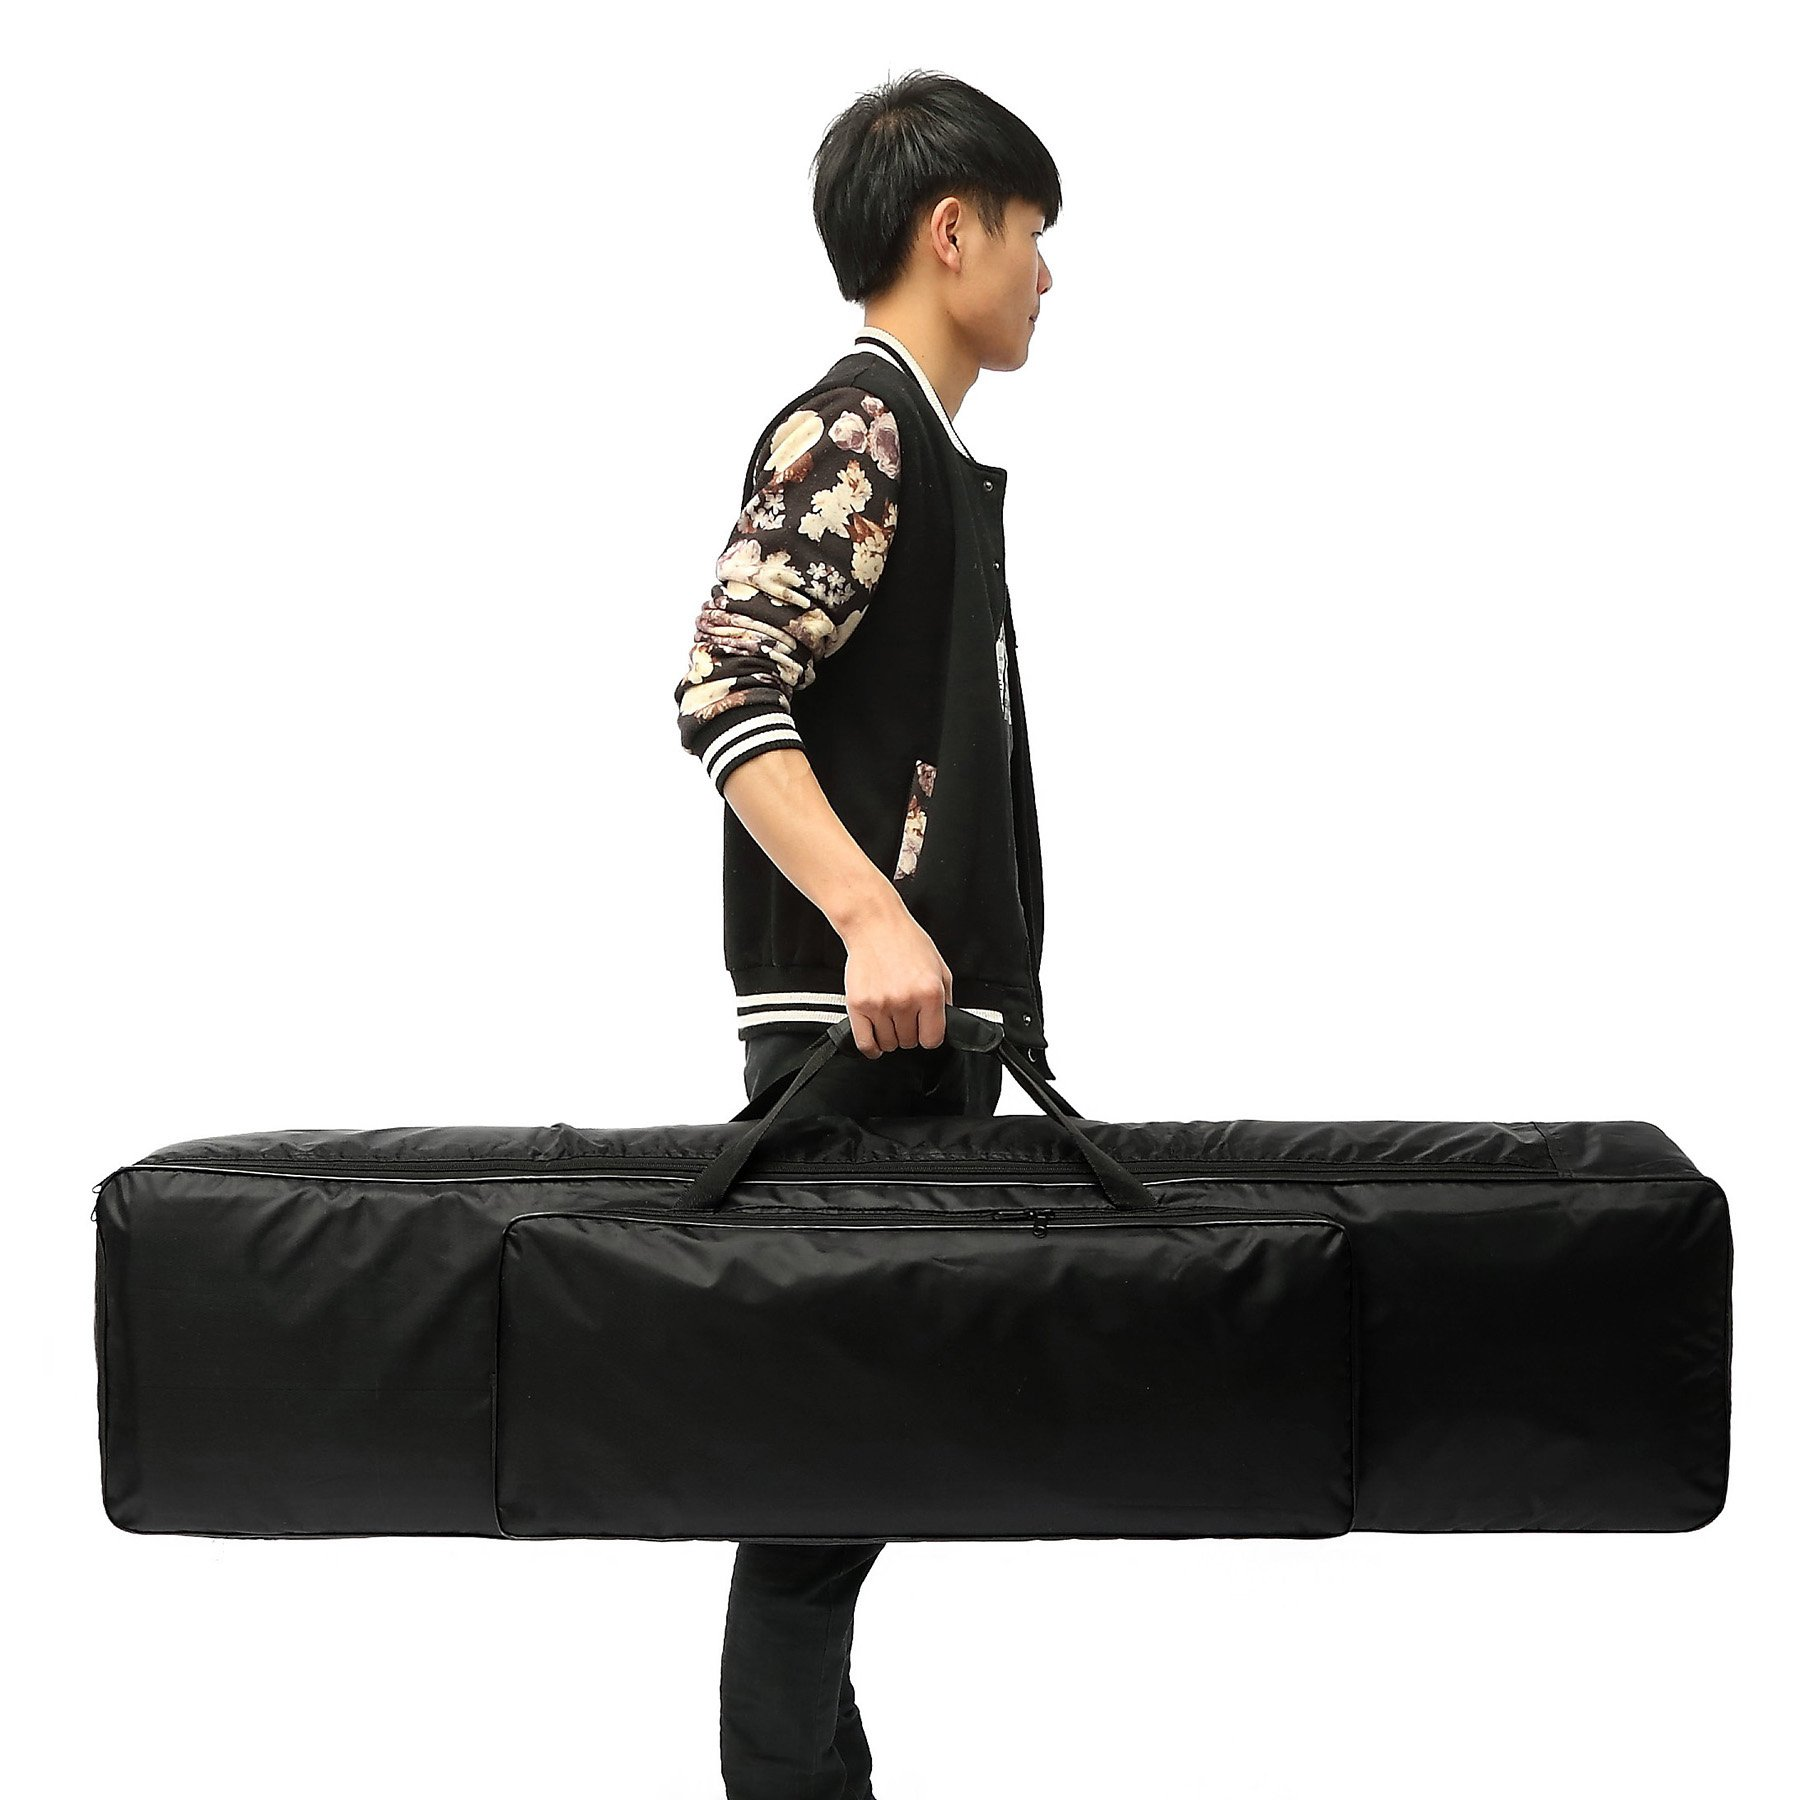 NKTM 88 Key Electric Piano Keyboard Gig Bag,Adjustable and Portable Backpack Straps(NOT FIT All 88-Key Keyboards) 52 x 12 x 6in by NKTM (Image #7)